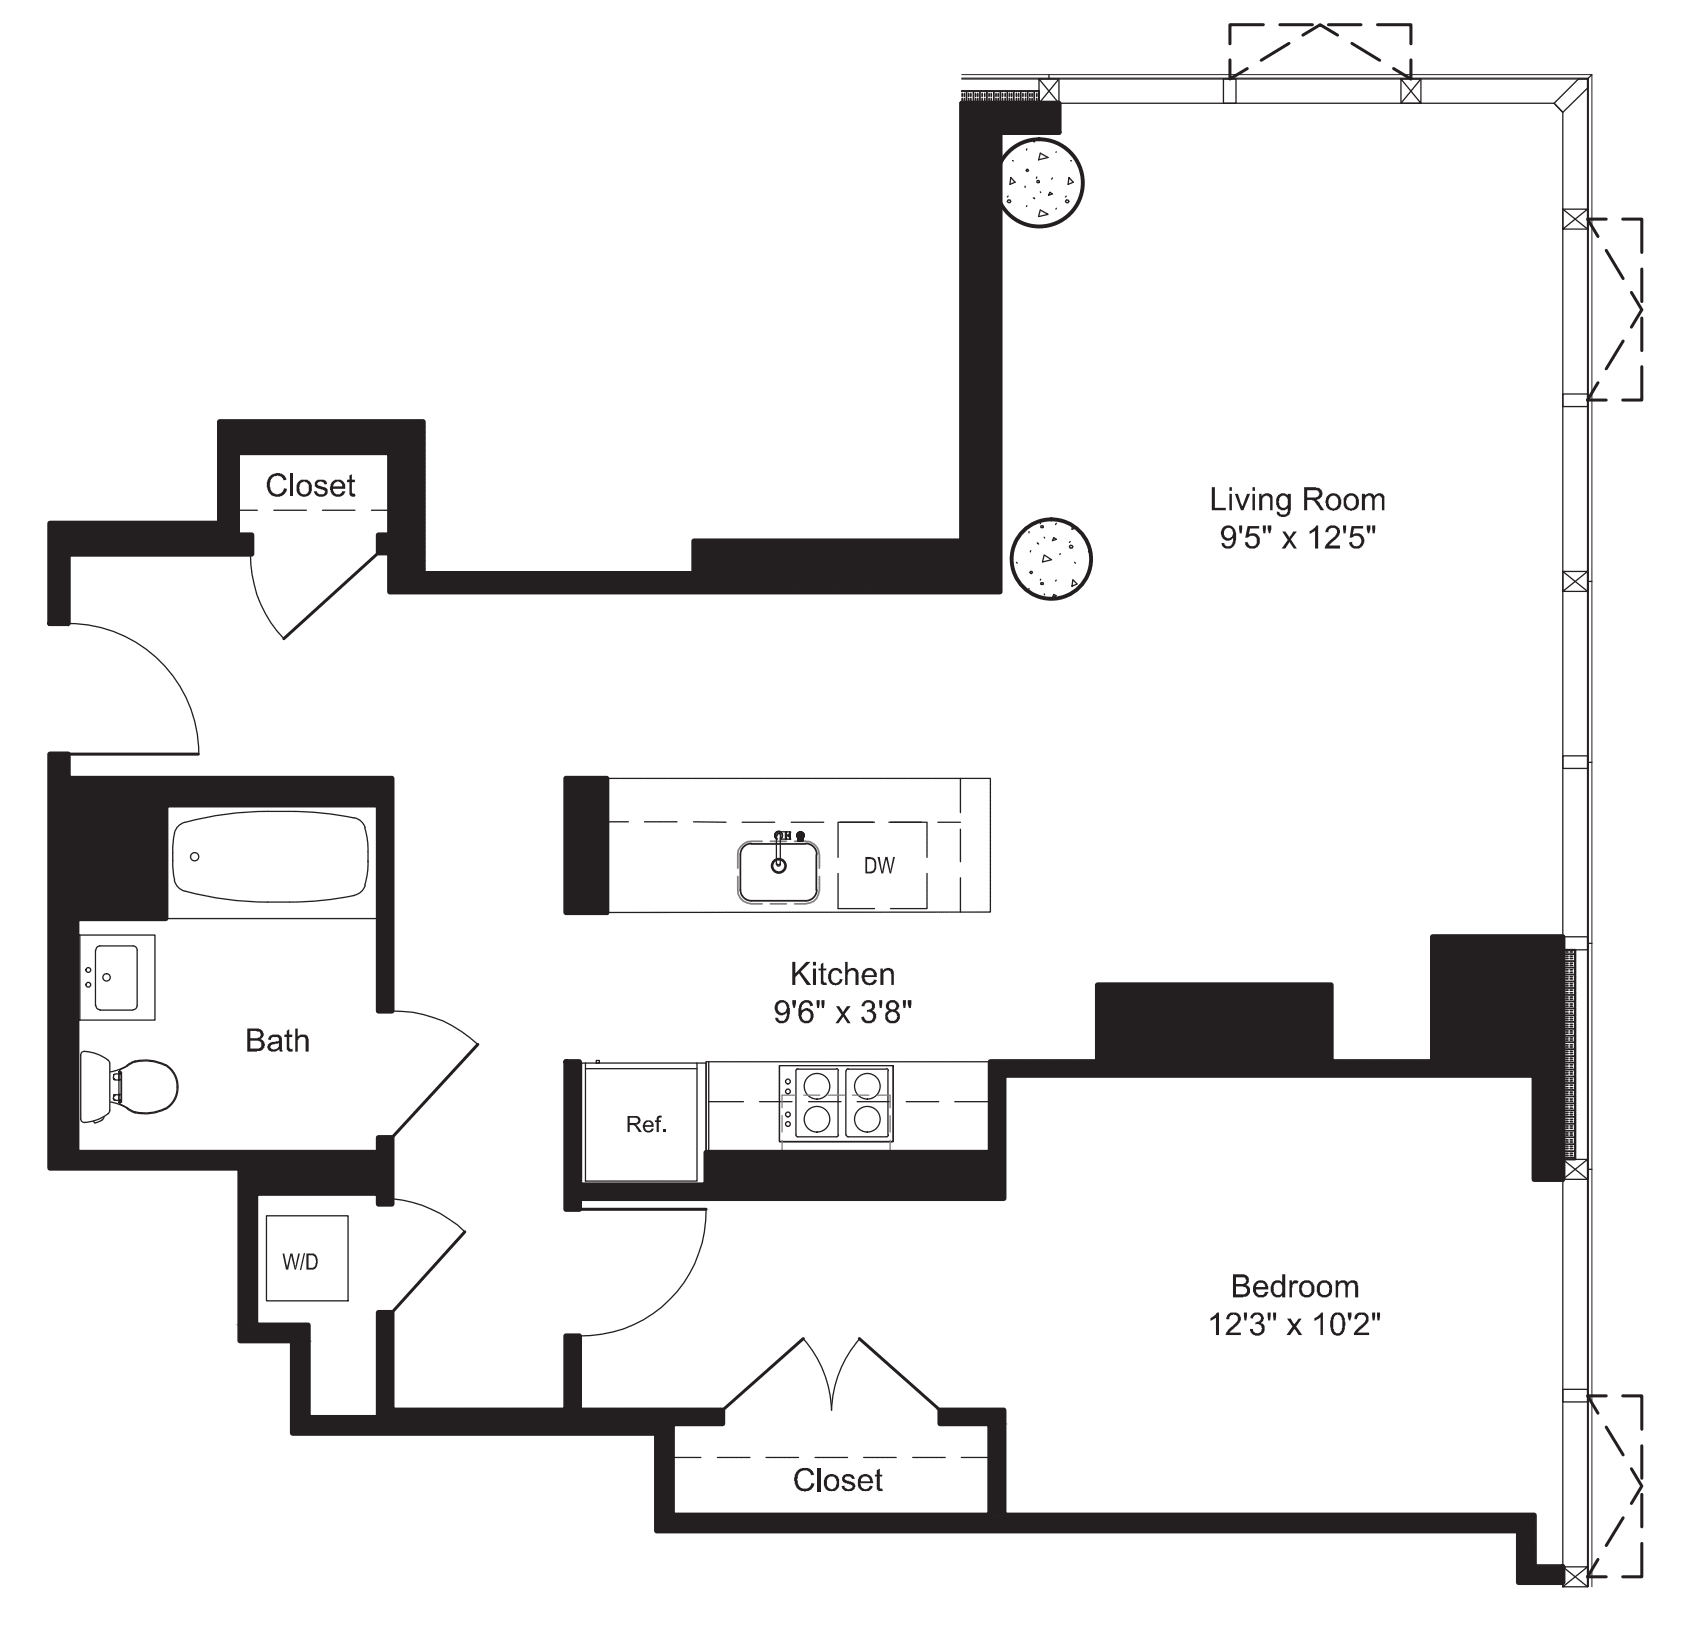 One Bedroom H 3-6